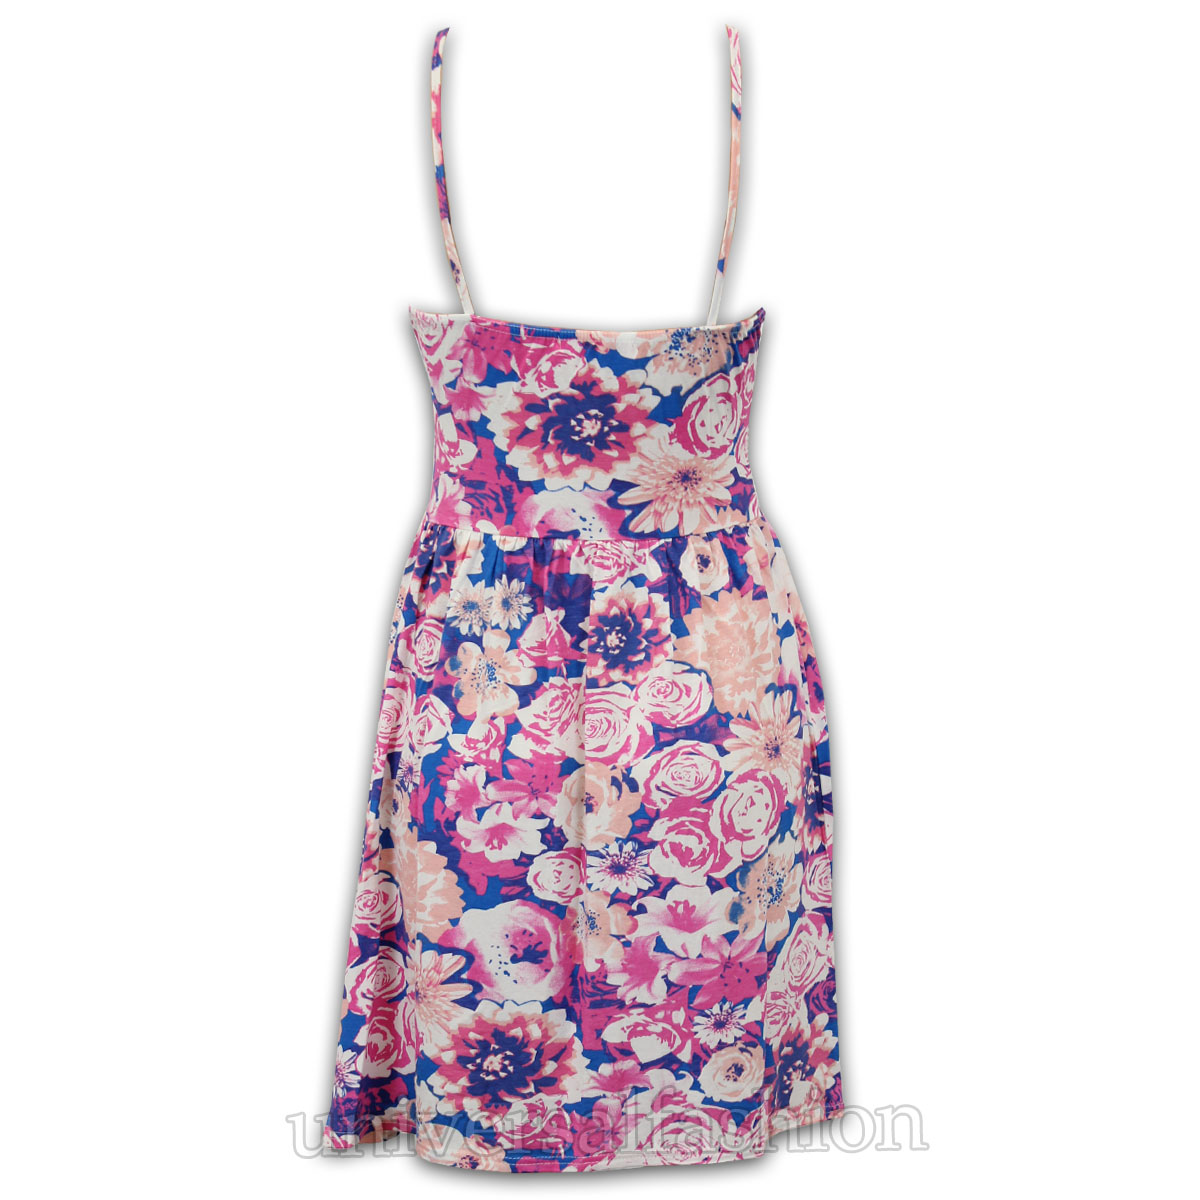 Ladies CamiSole Dress Women Skater Sam Faiers Towie Floral Print Flared Mini New